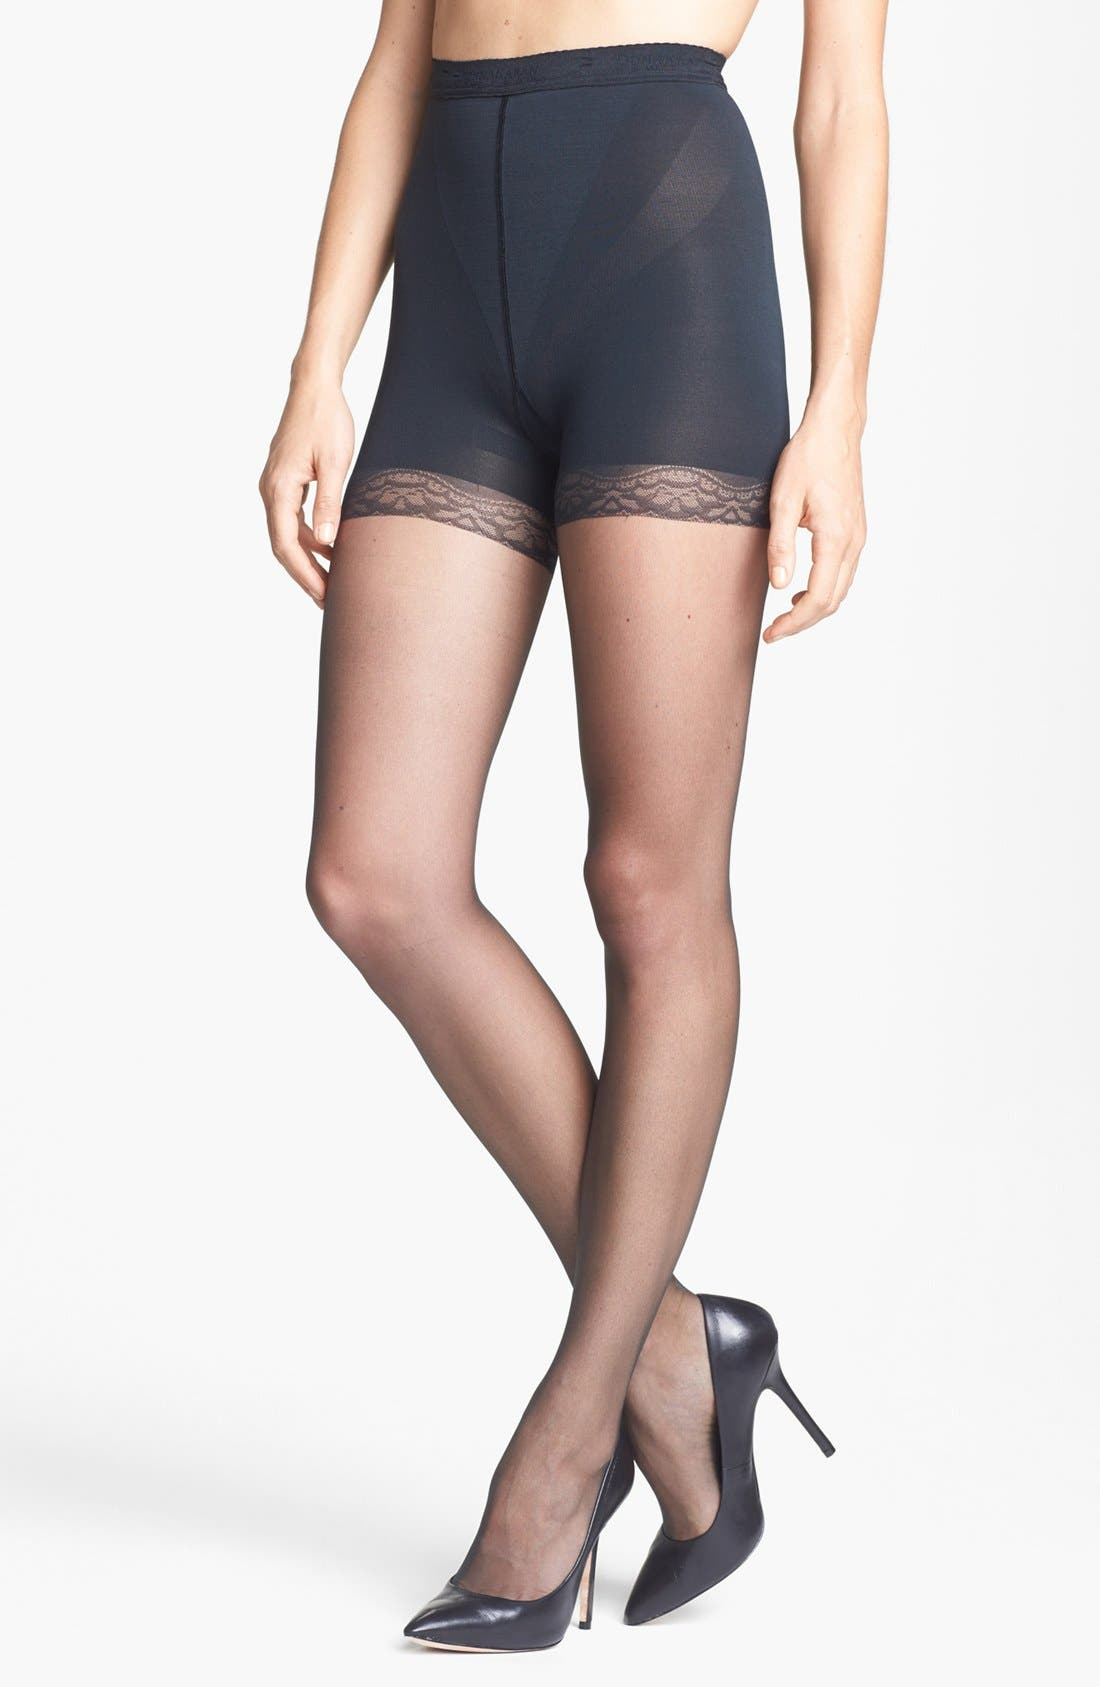 Black Pantyhose Products Sort